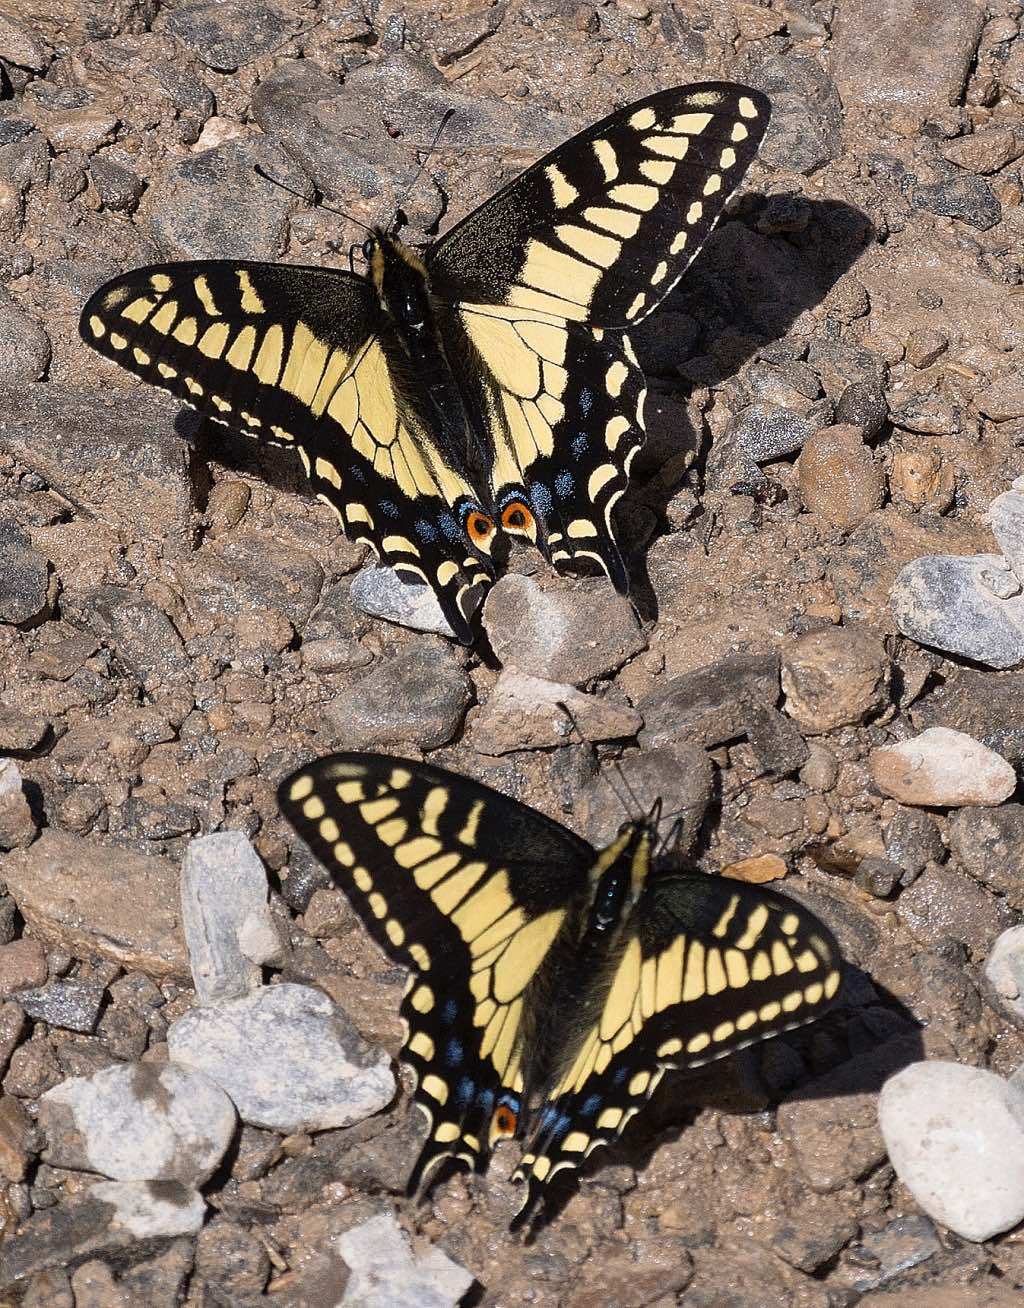 Anise Swallowtail Butterflies resting on rocks